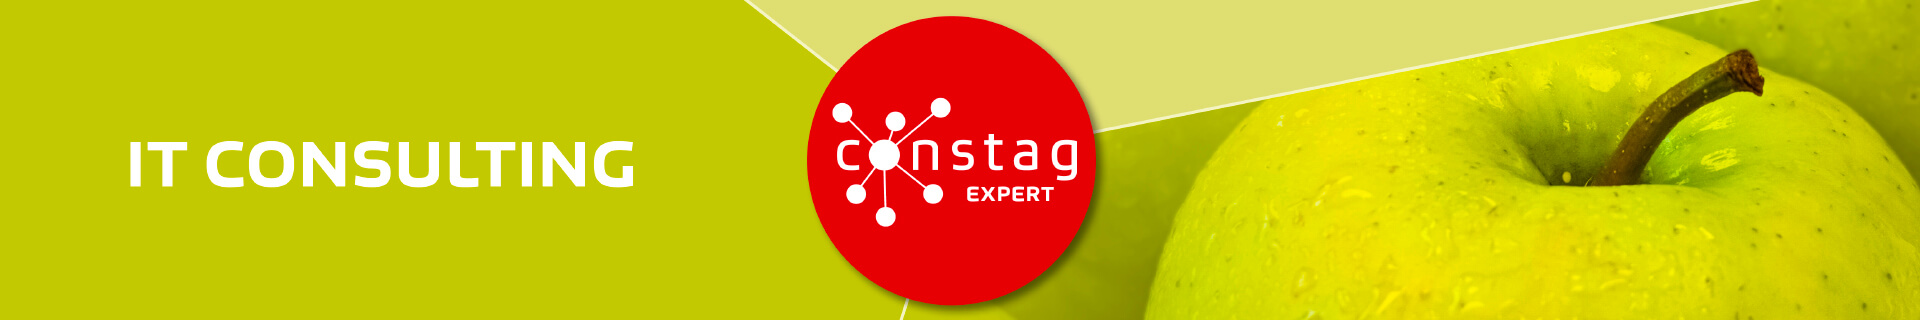 Constag Produkte IT Consulting EXPERT